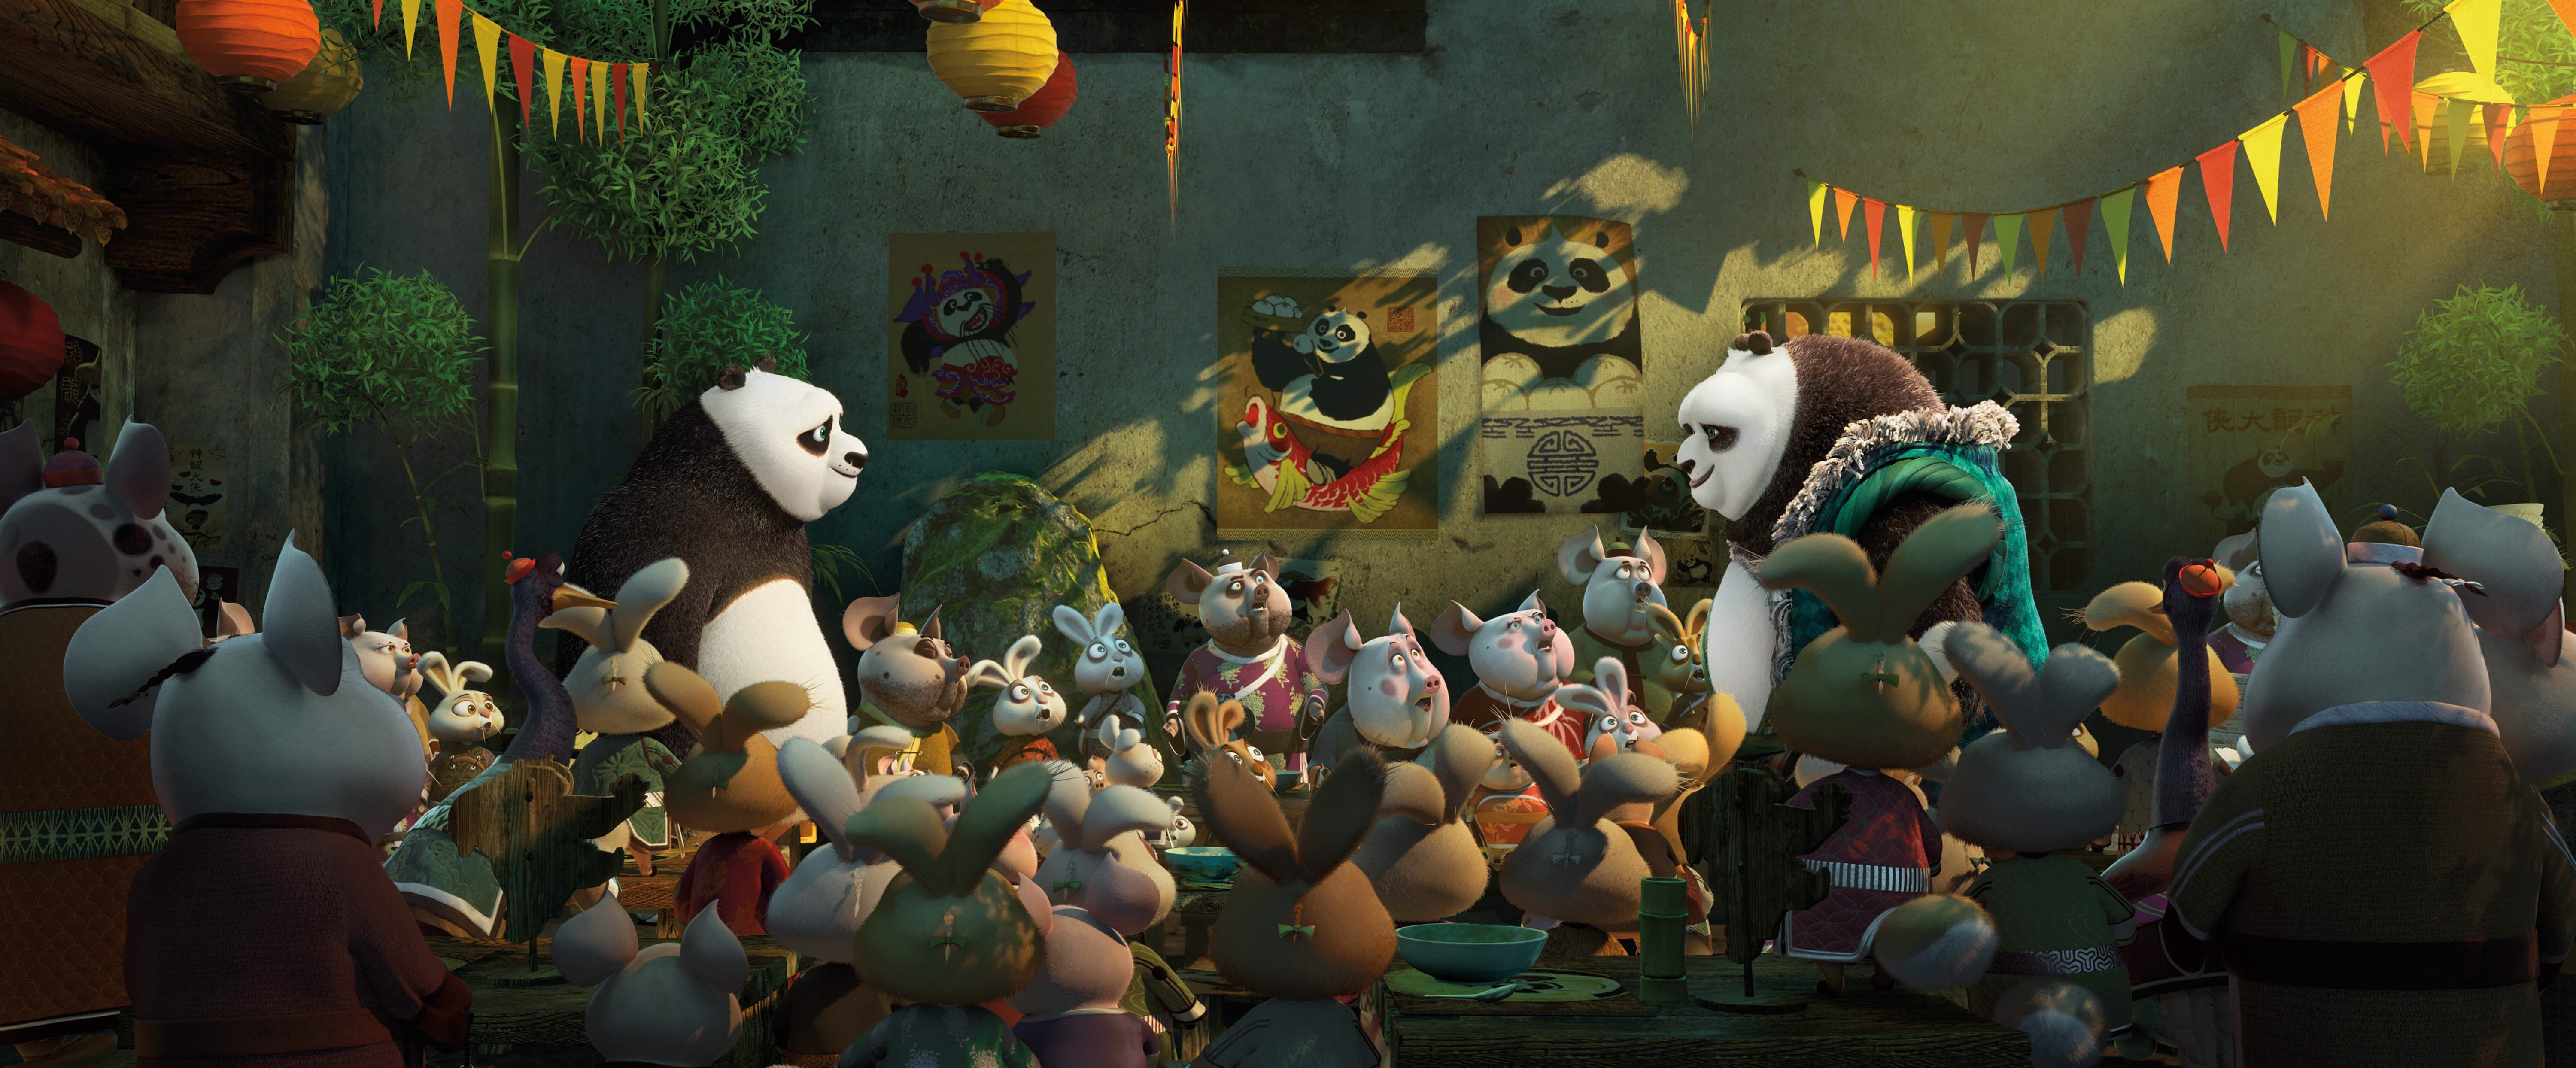 Po and co. in Kung Fu Panda 3